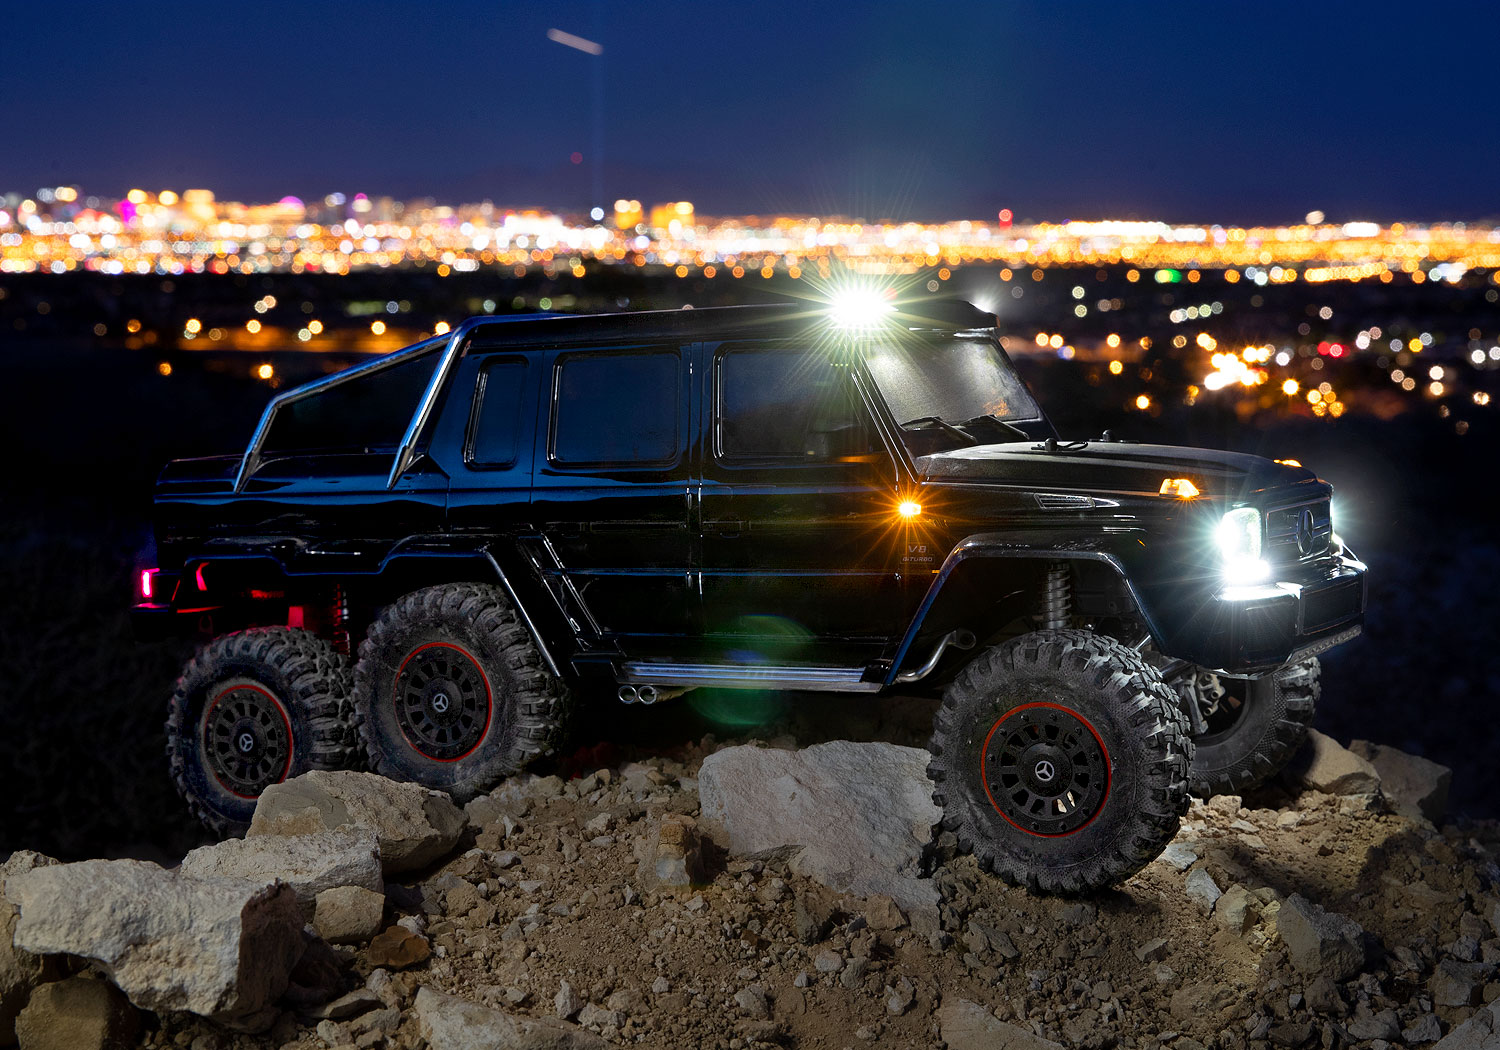 TRX-4 Mercedes-Benz G 63 AMG 6x6 Factory-Equipped LED Lighting